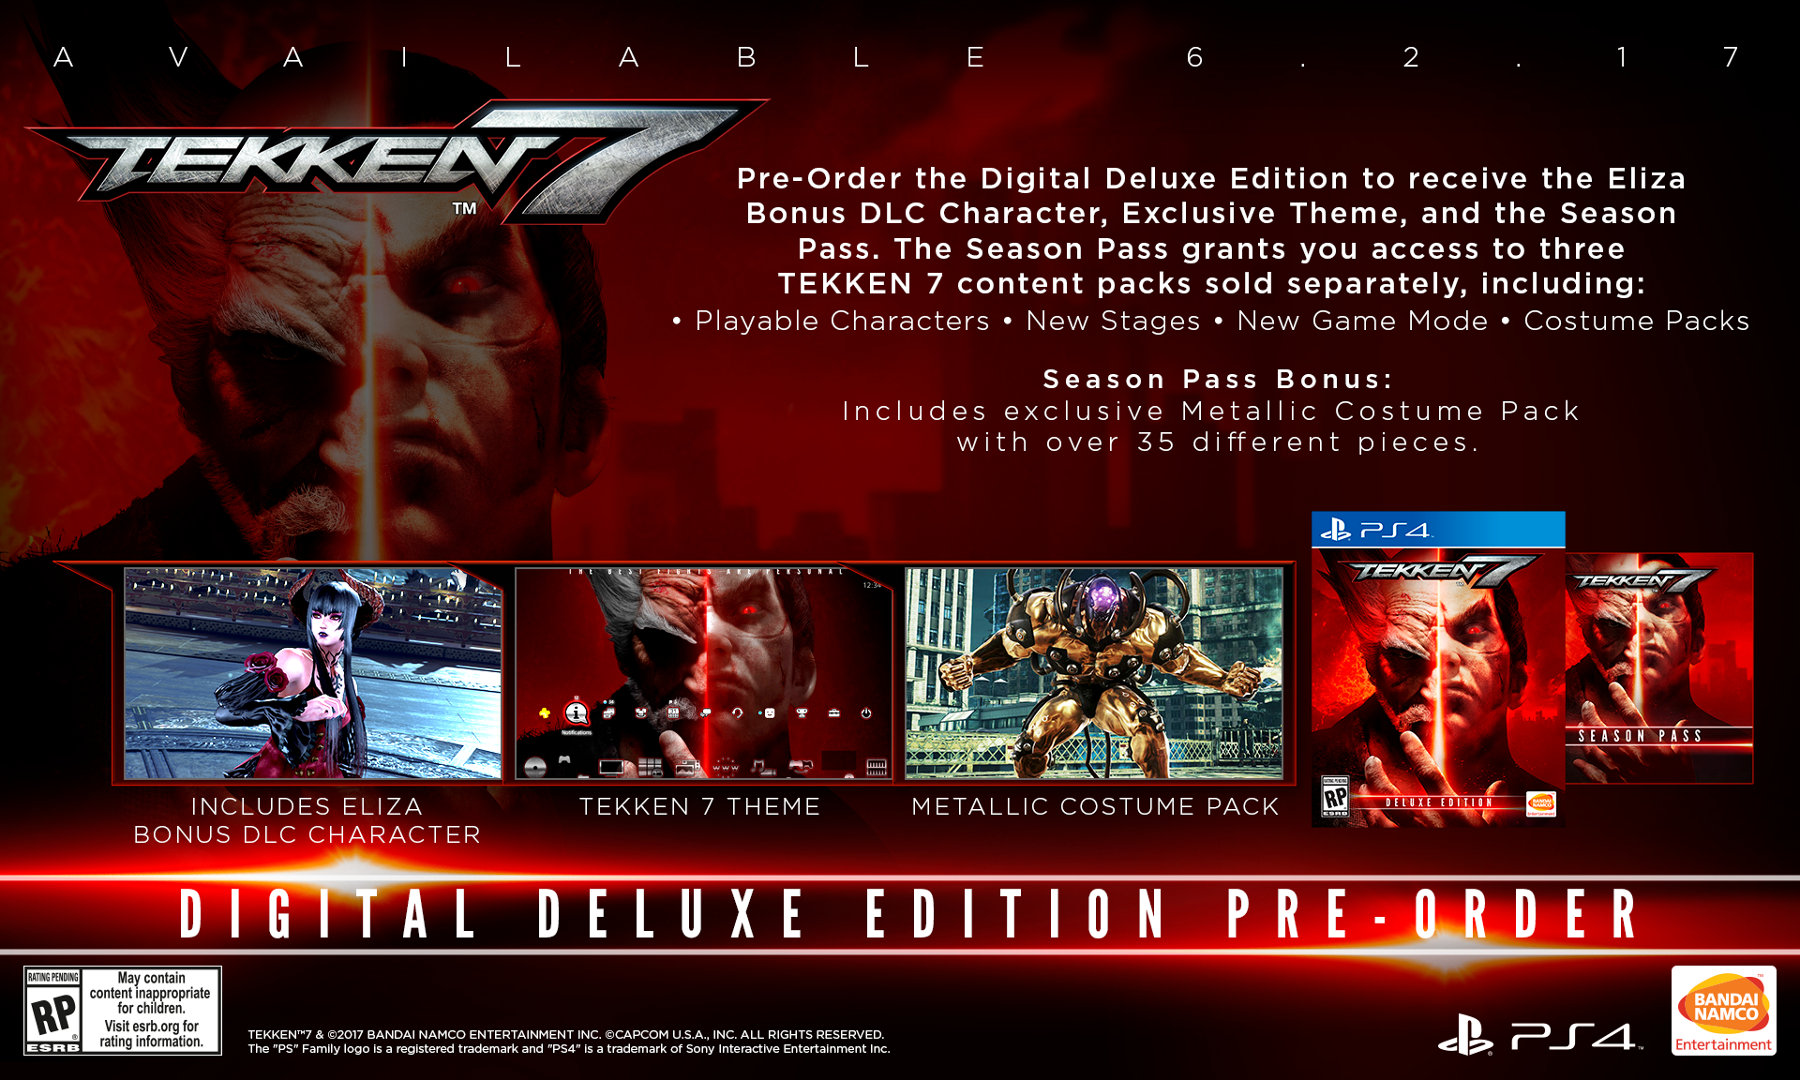 tekken-7-digital-deluxe-edition-preorder-art-01-ps4-us-23jan17?$MediaCarousel_Original$